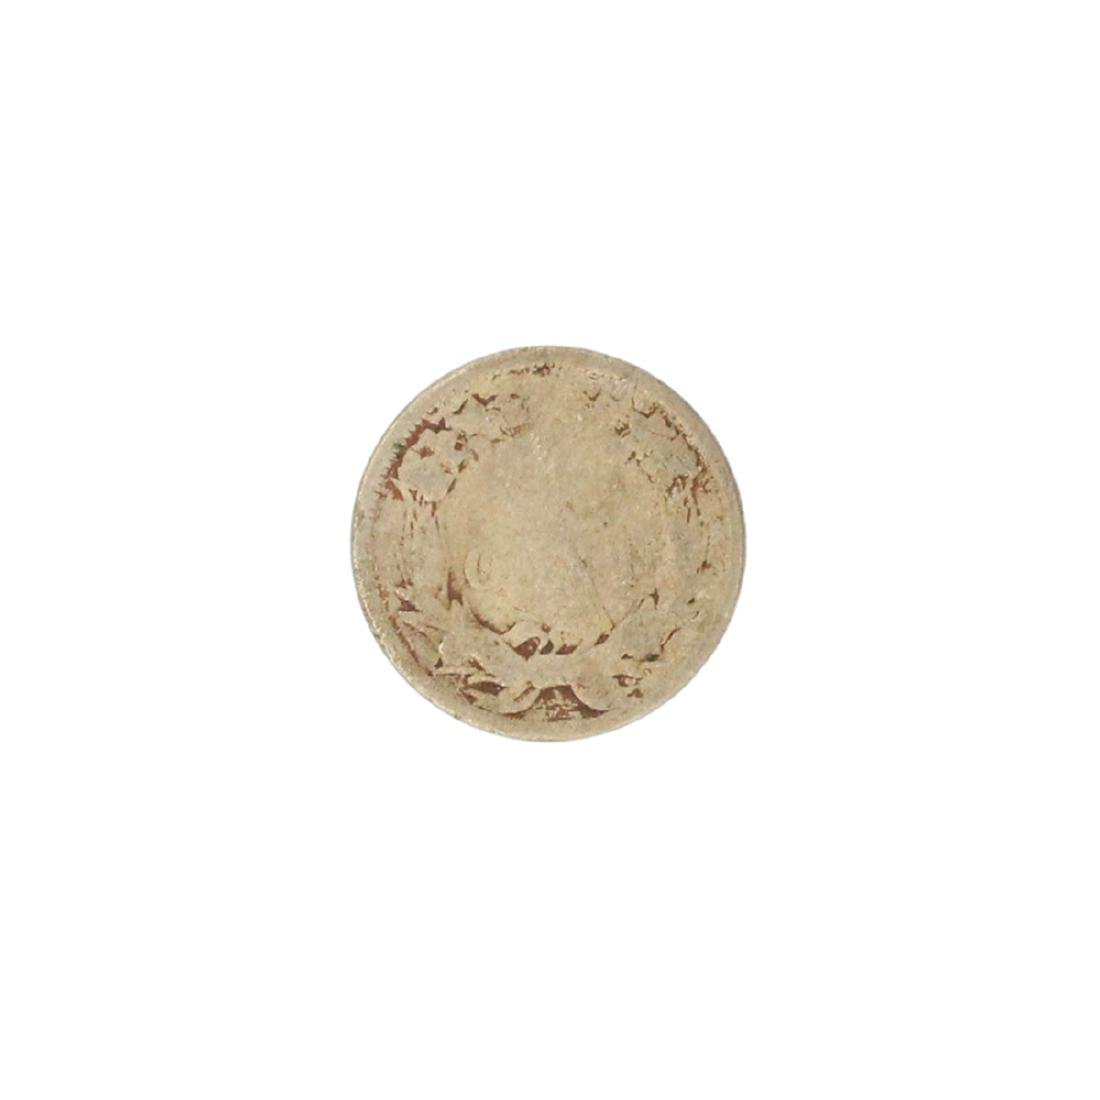 1858 Flying Eagle One Cent Coin - 2